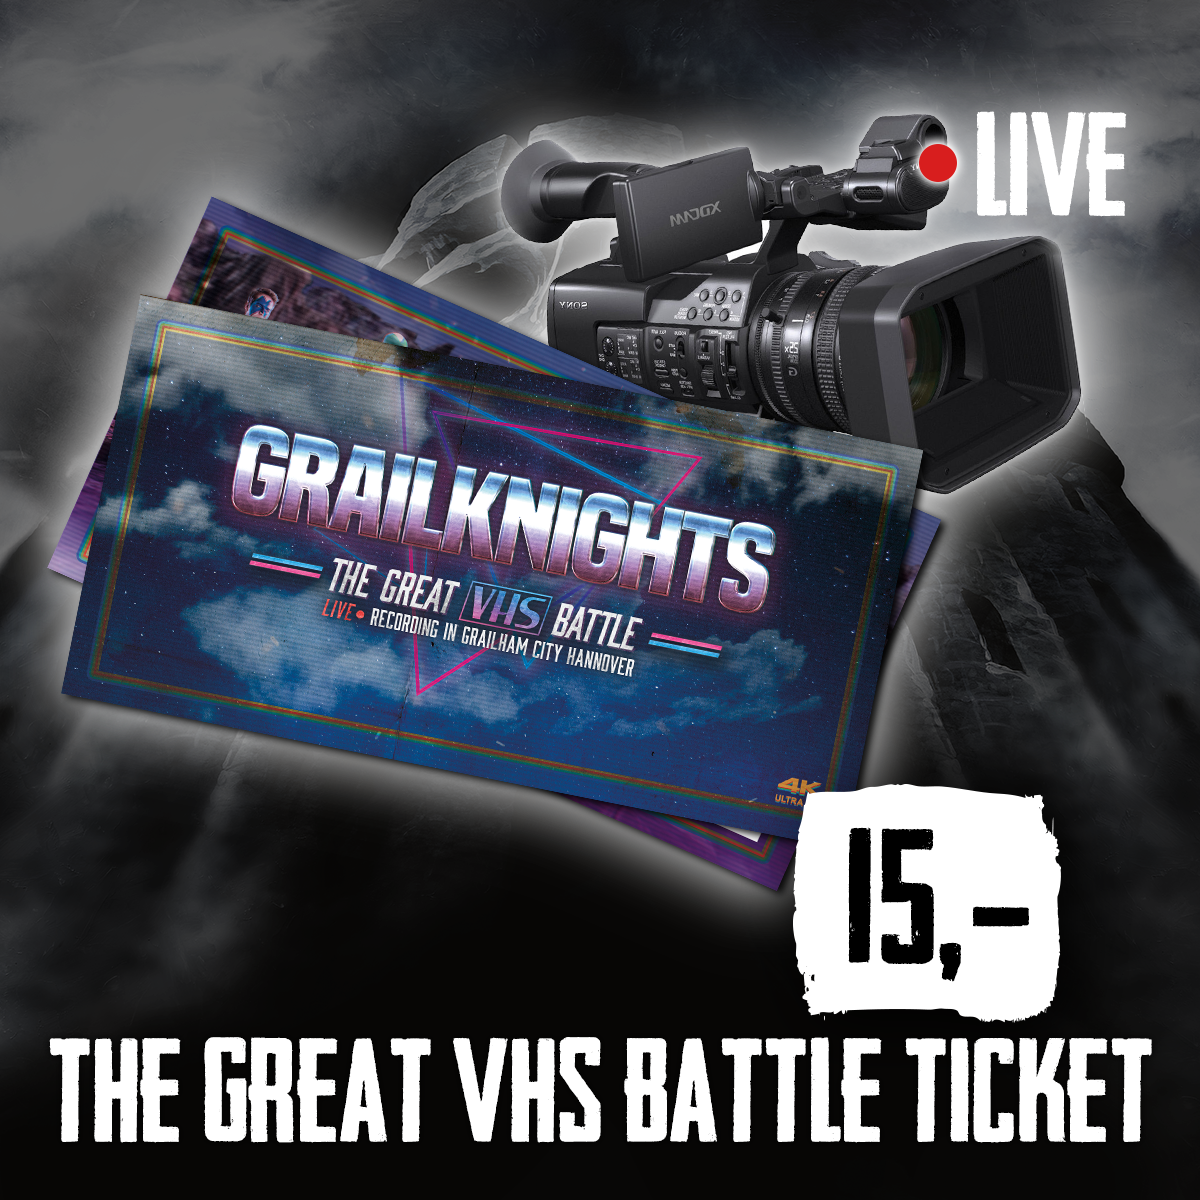 VHS Battle Ticket